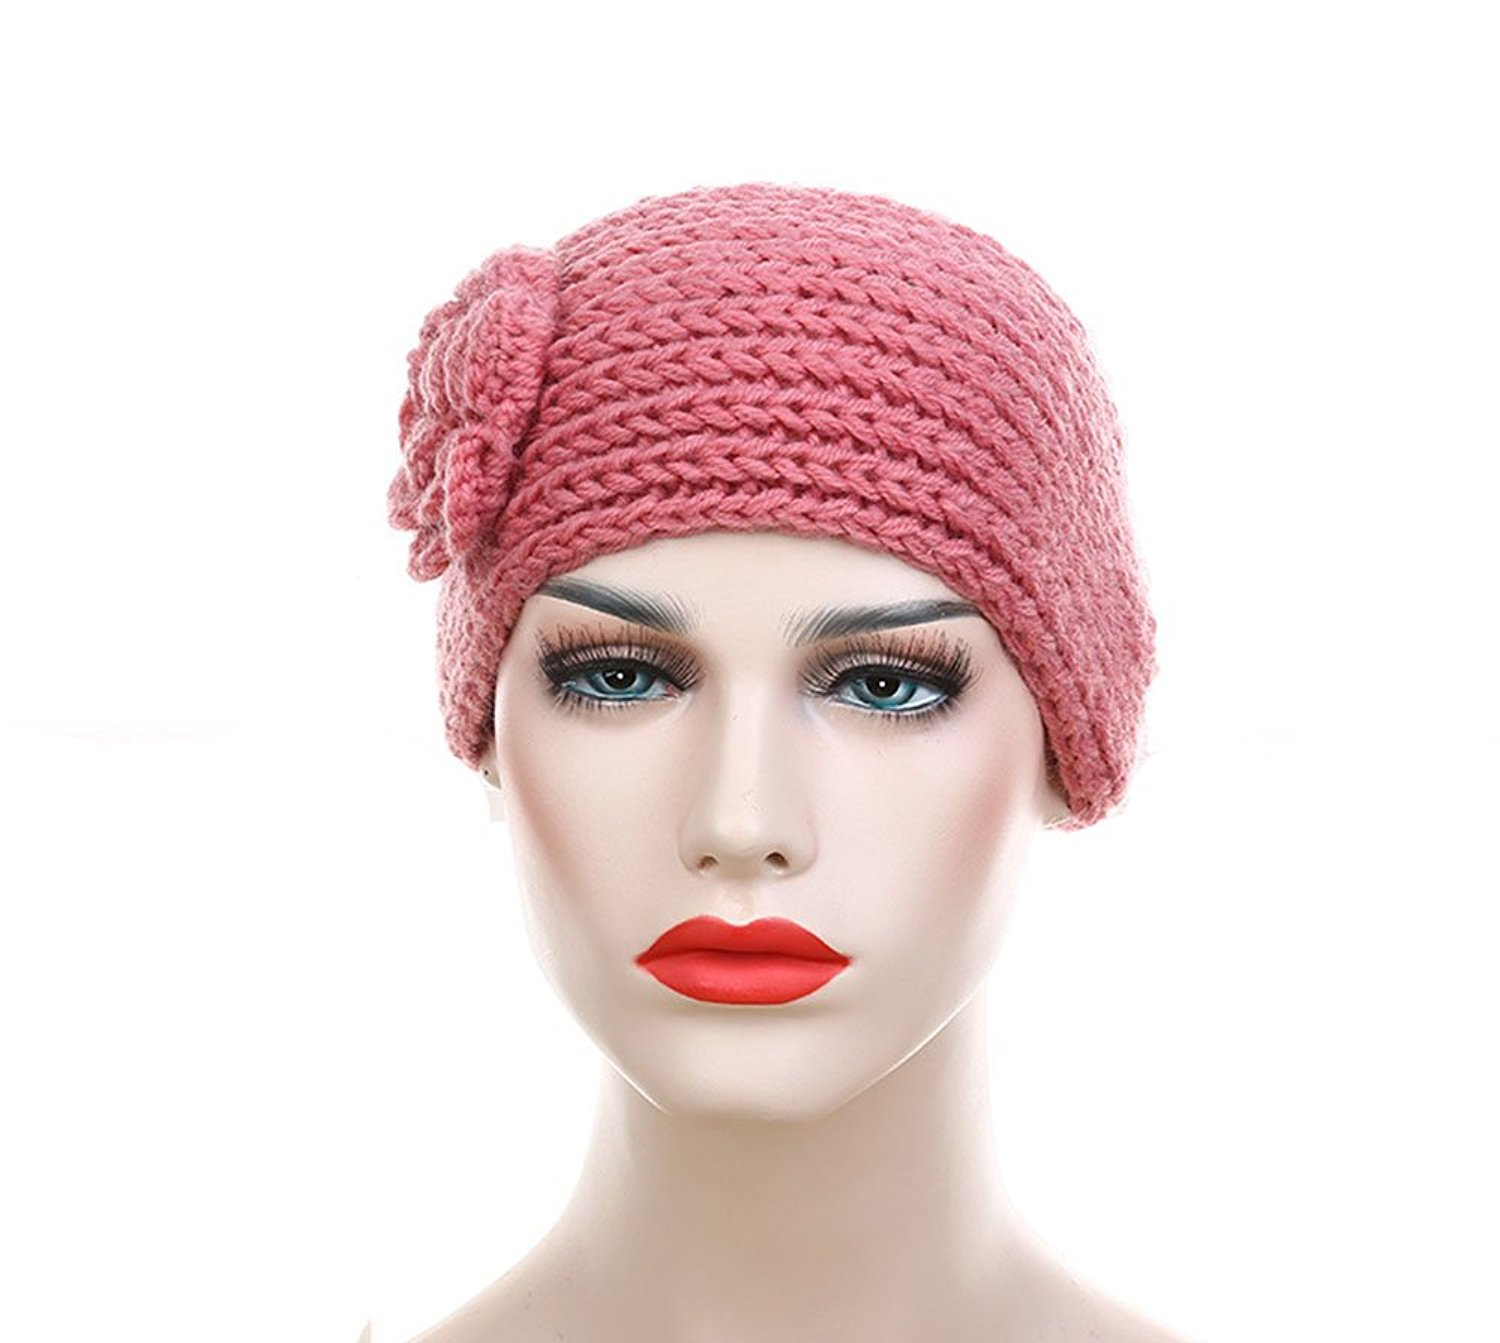 e71987862faaa2 New classic plain Crochet Headband Knit hairband Winter Women Ear Warmer  Headwrap womens knit headbands